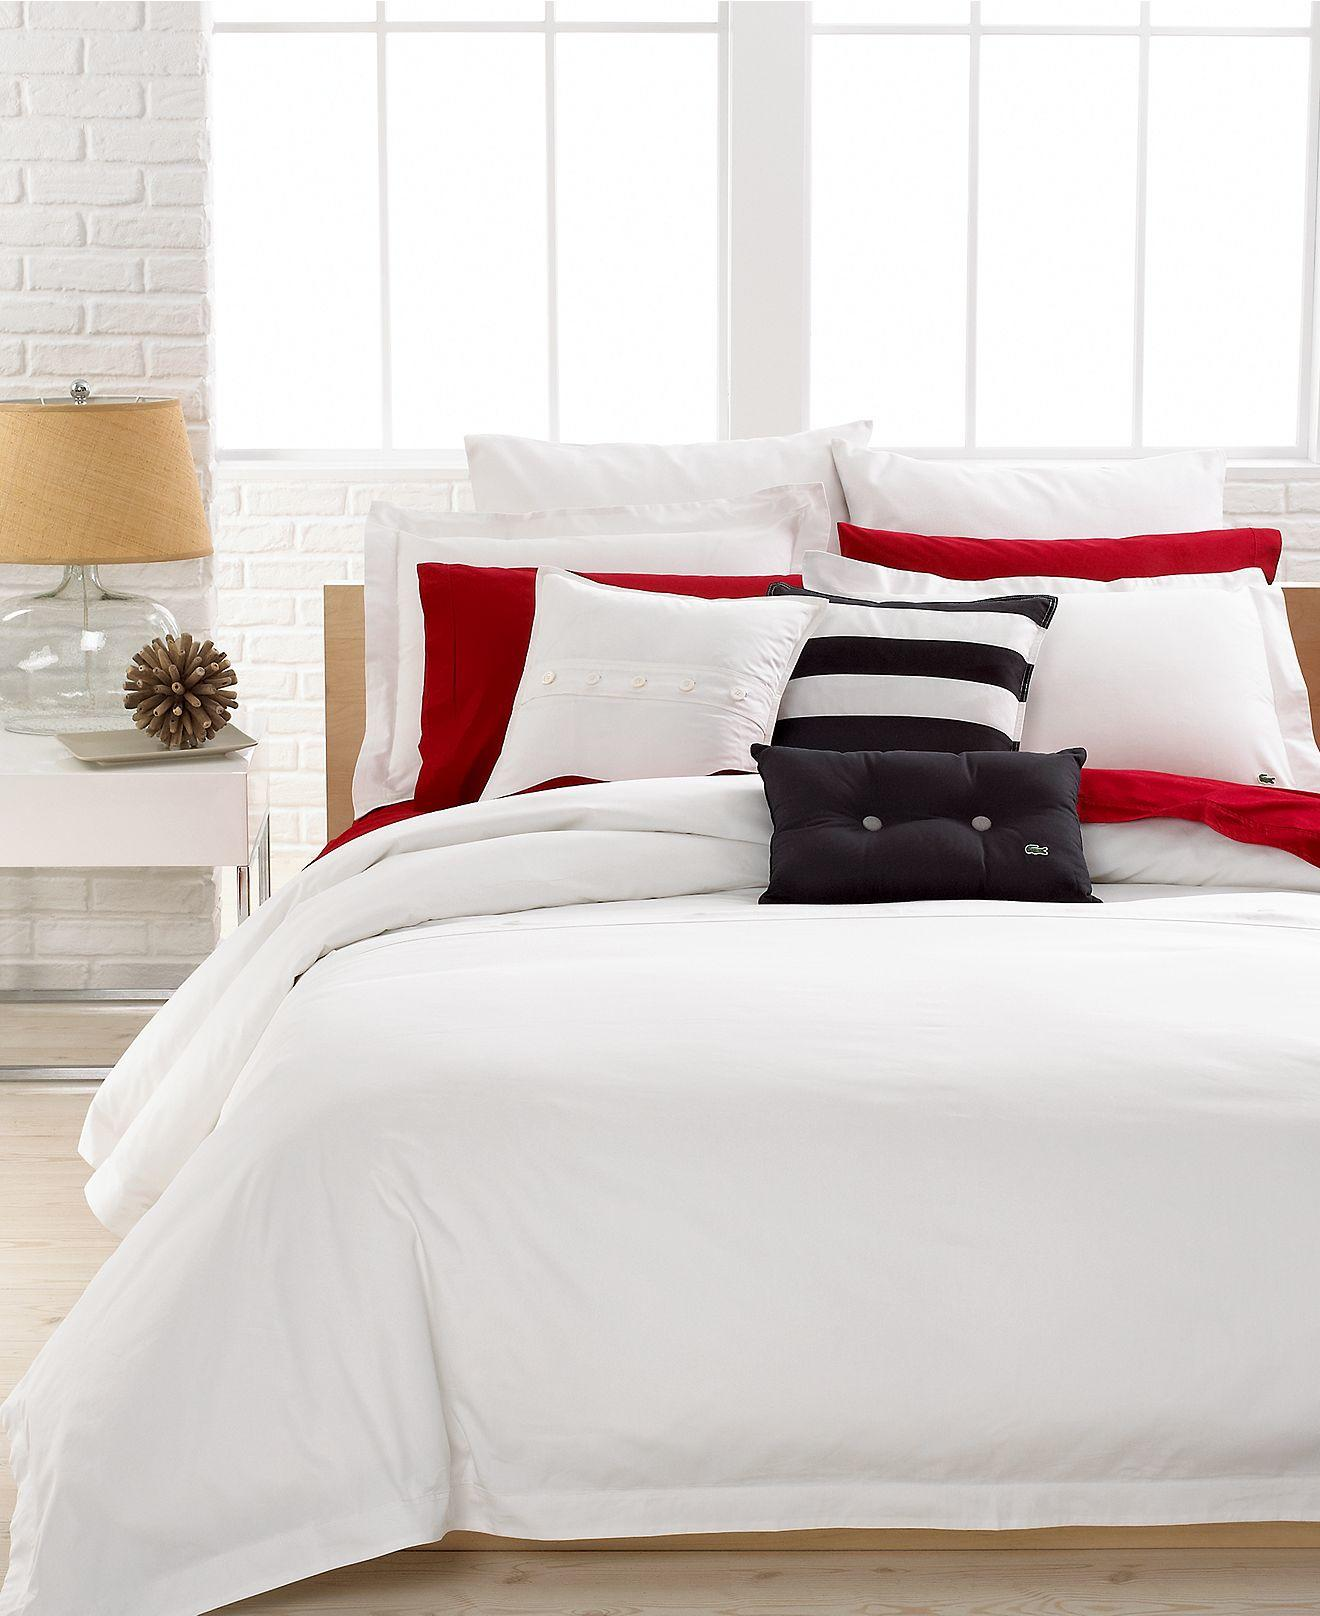 Lacoste Bedding Solid White Brushed From Macys